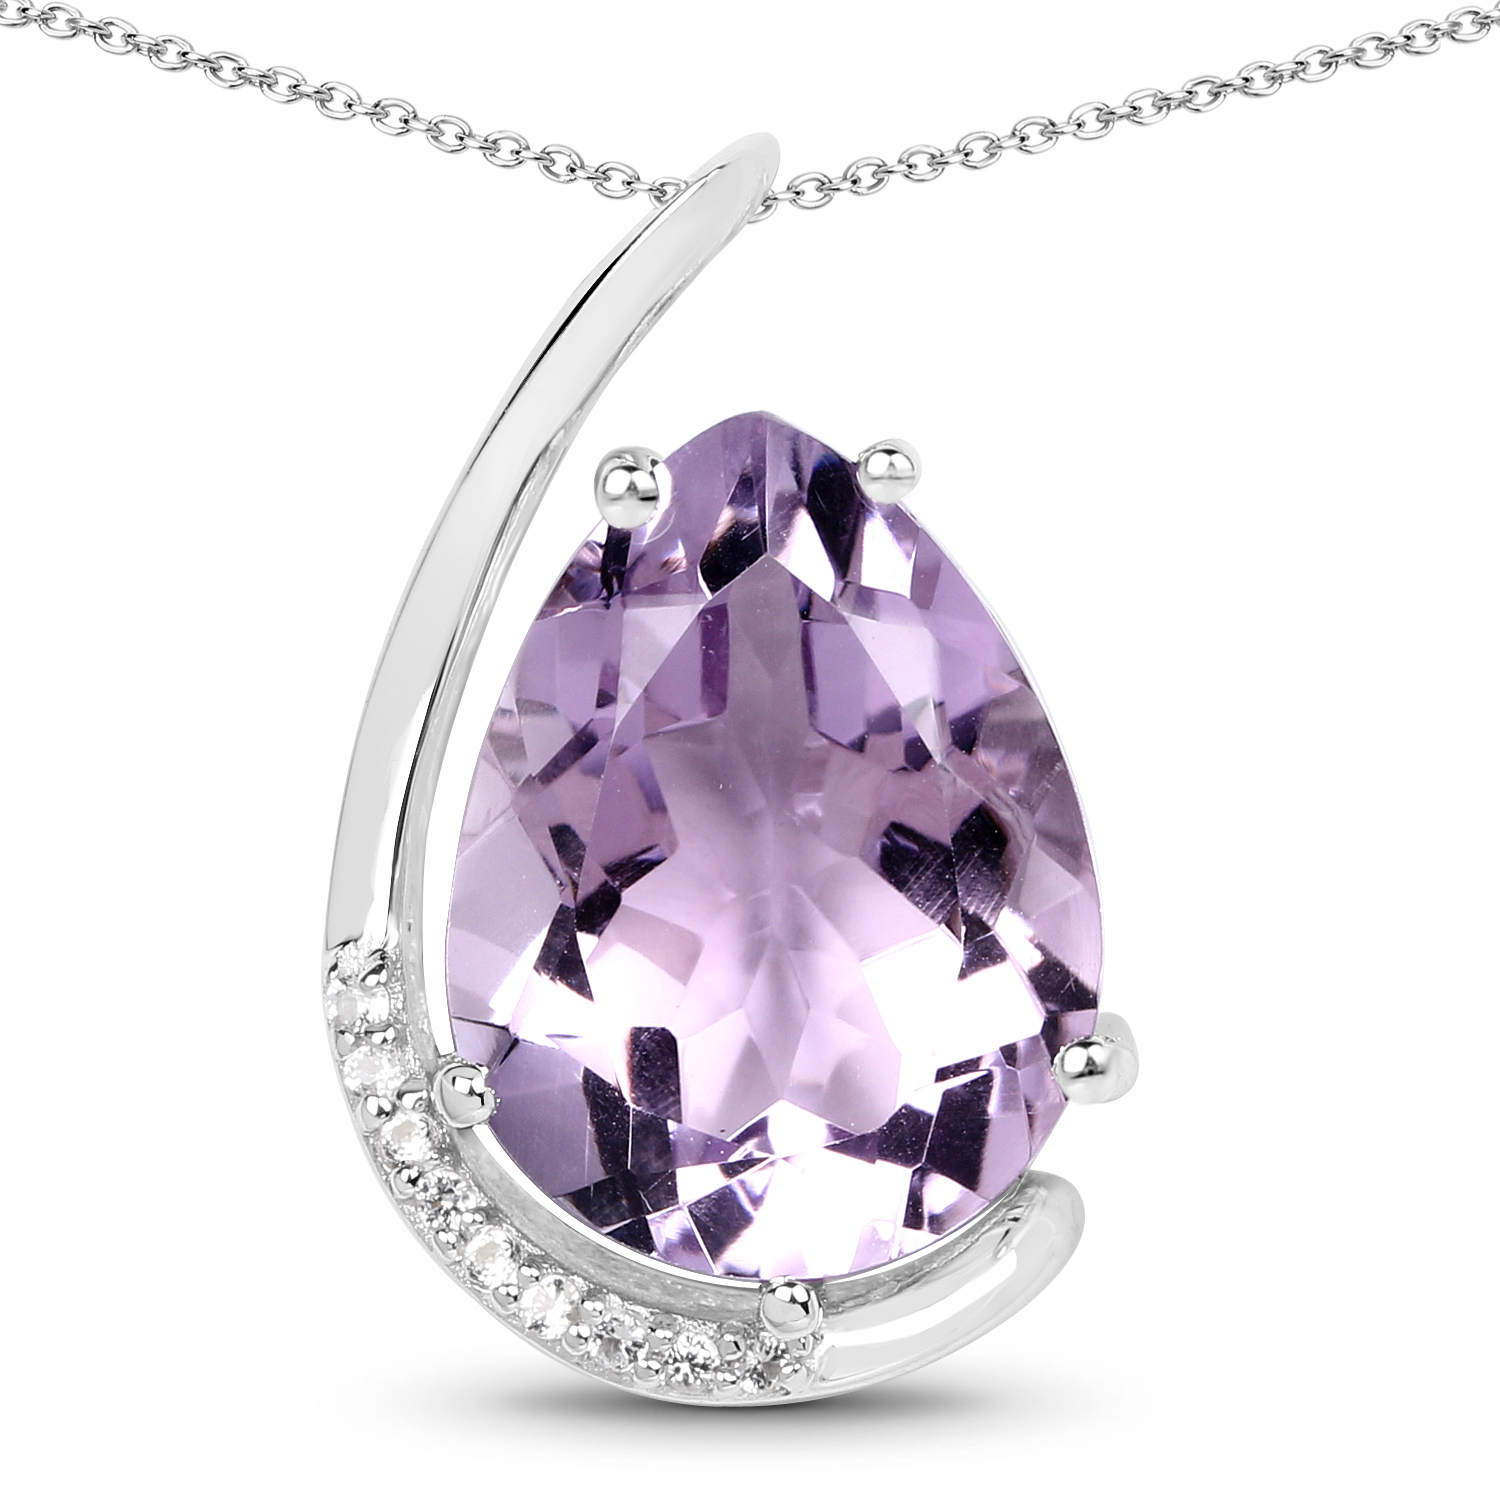 Details about  /1 ct Created Amethyst /& White Sapphire Twist Pendant in Sterling Silver Necklace